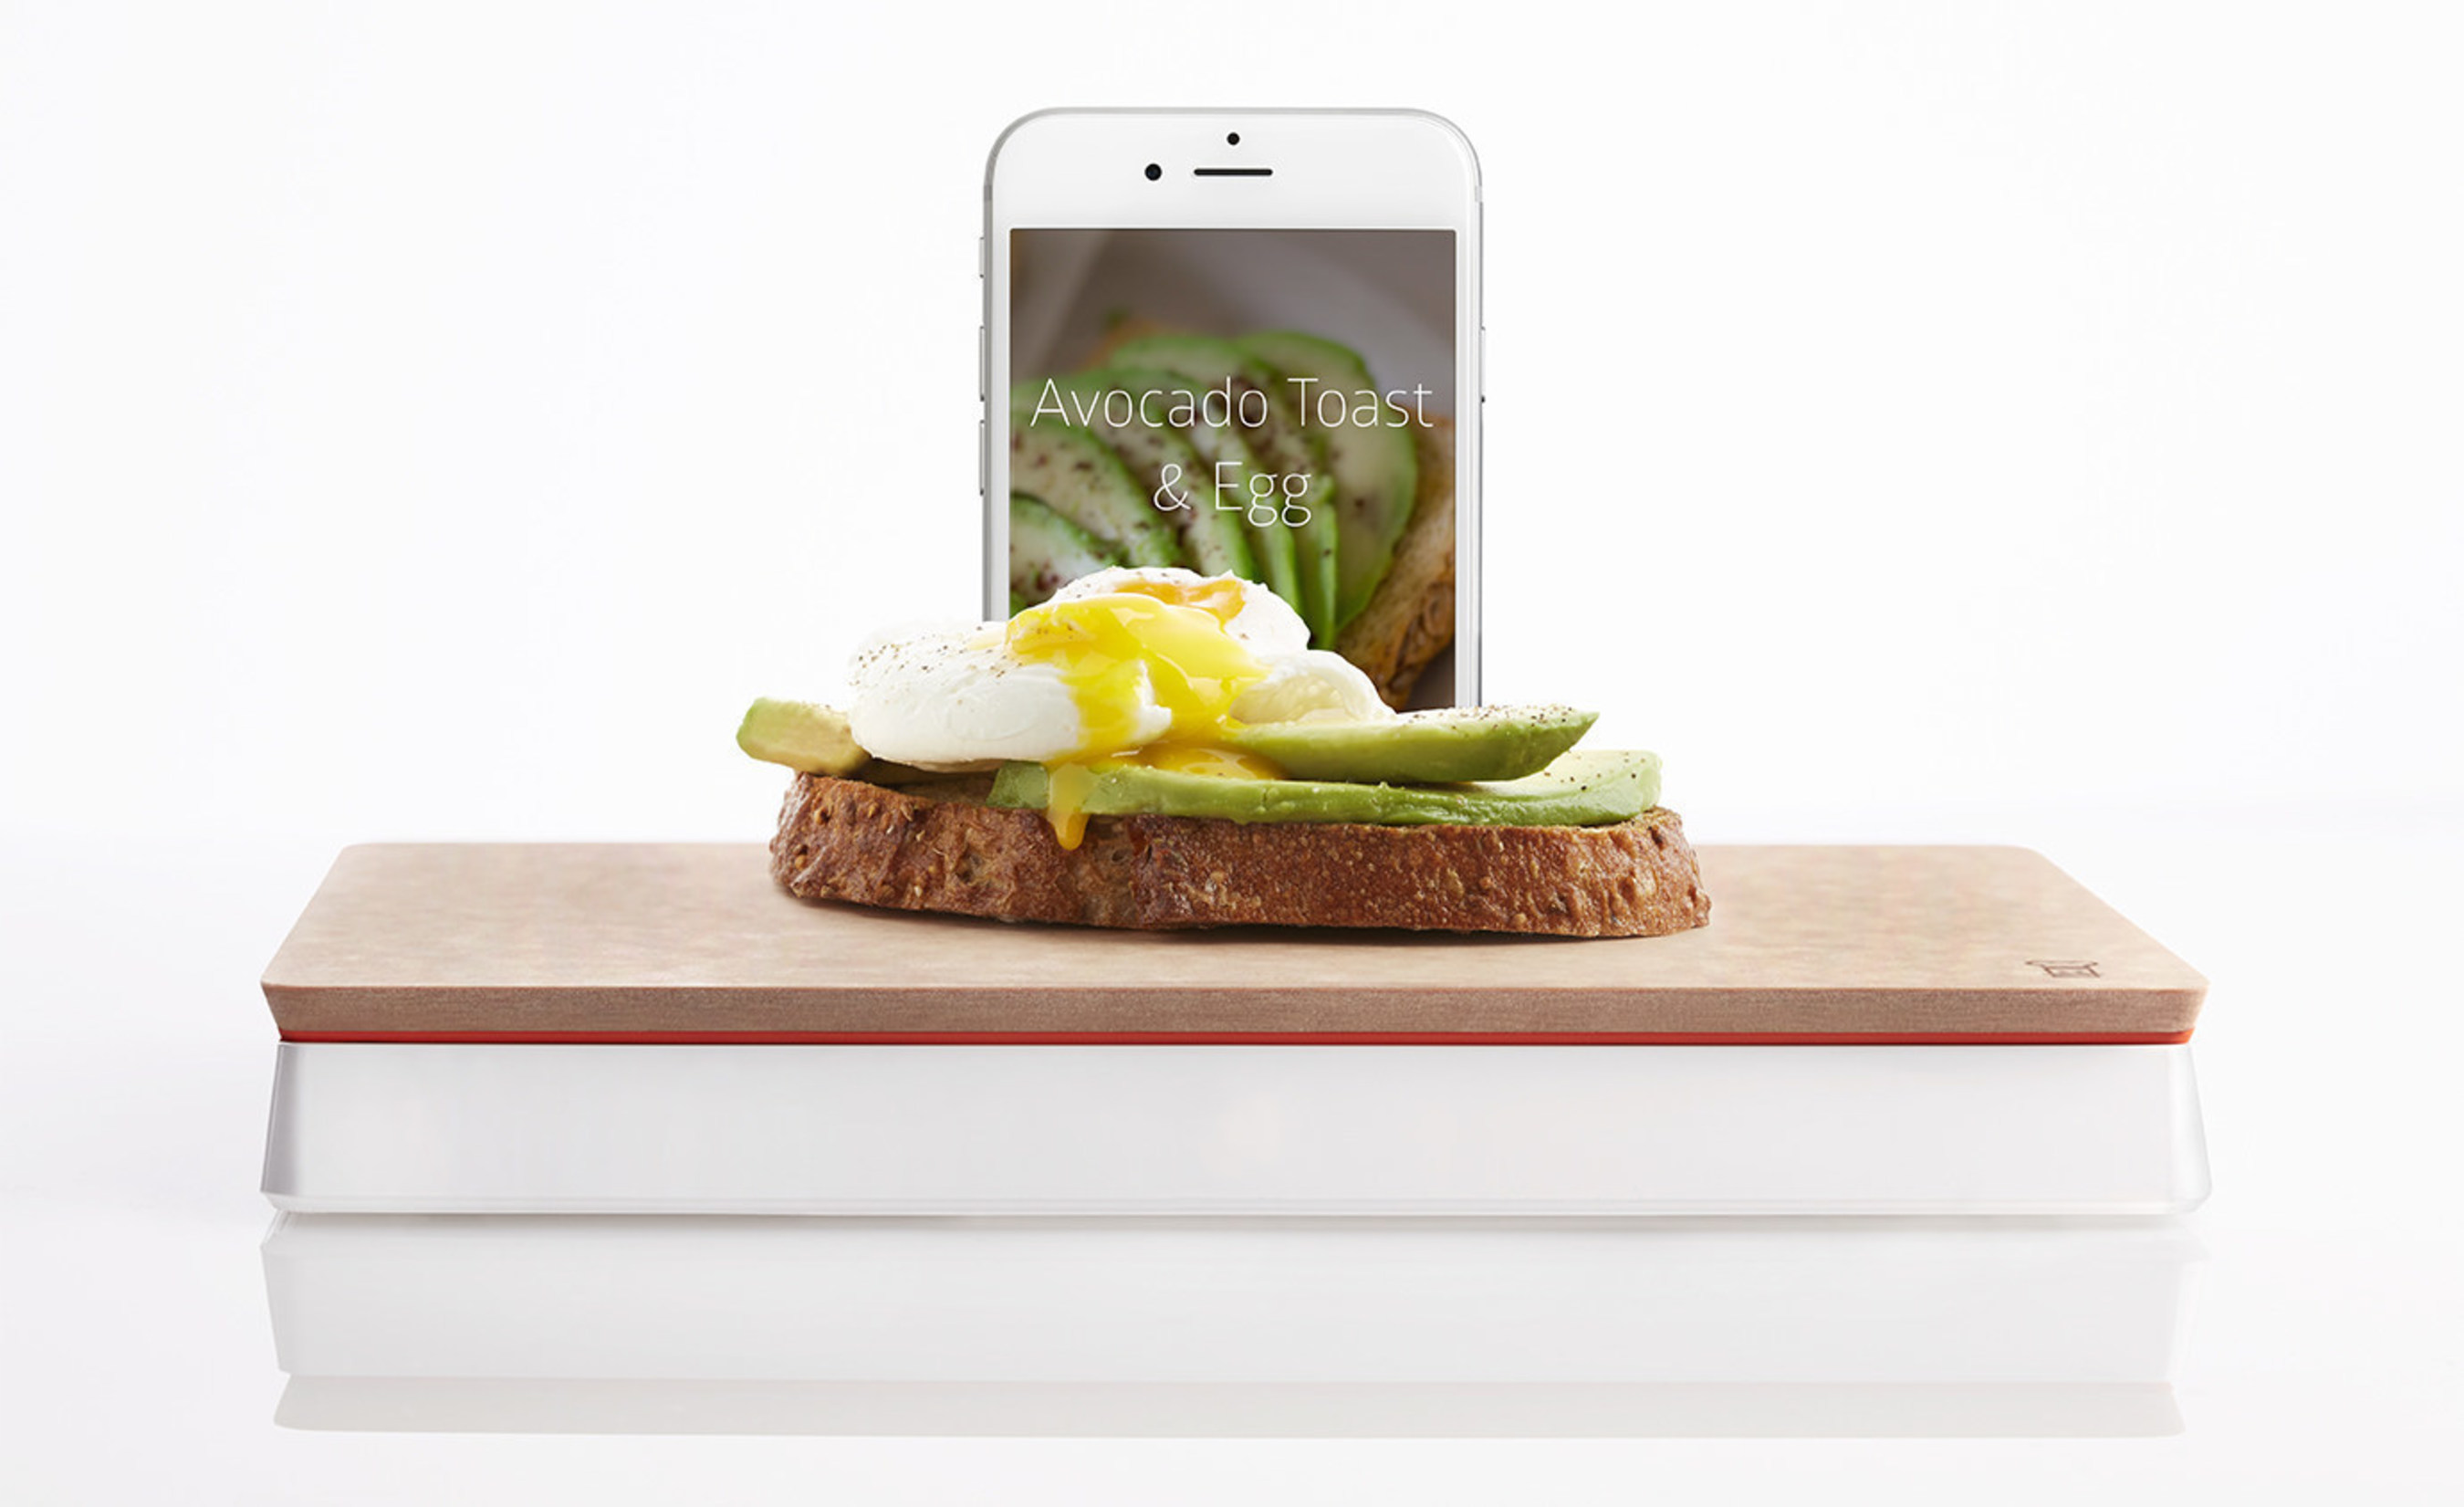 Countertop'' is a Smart Kitchen System That Connects Appliances For Healthy Eating